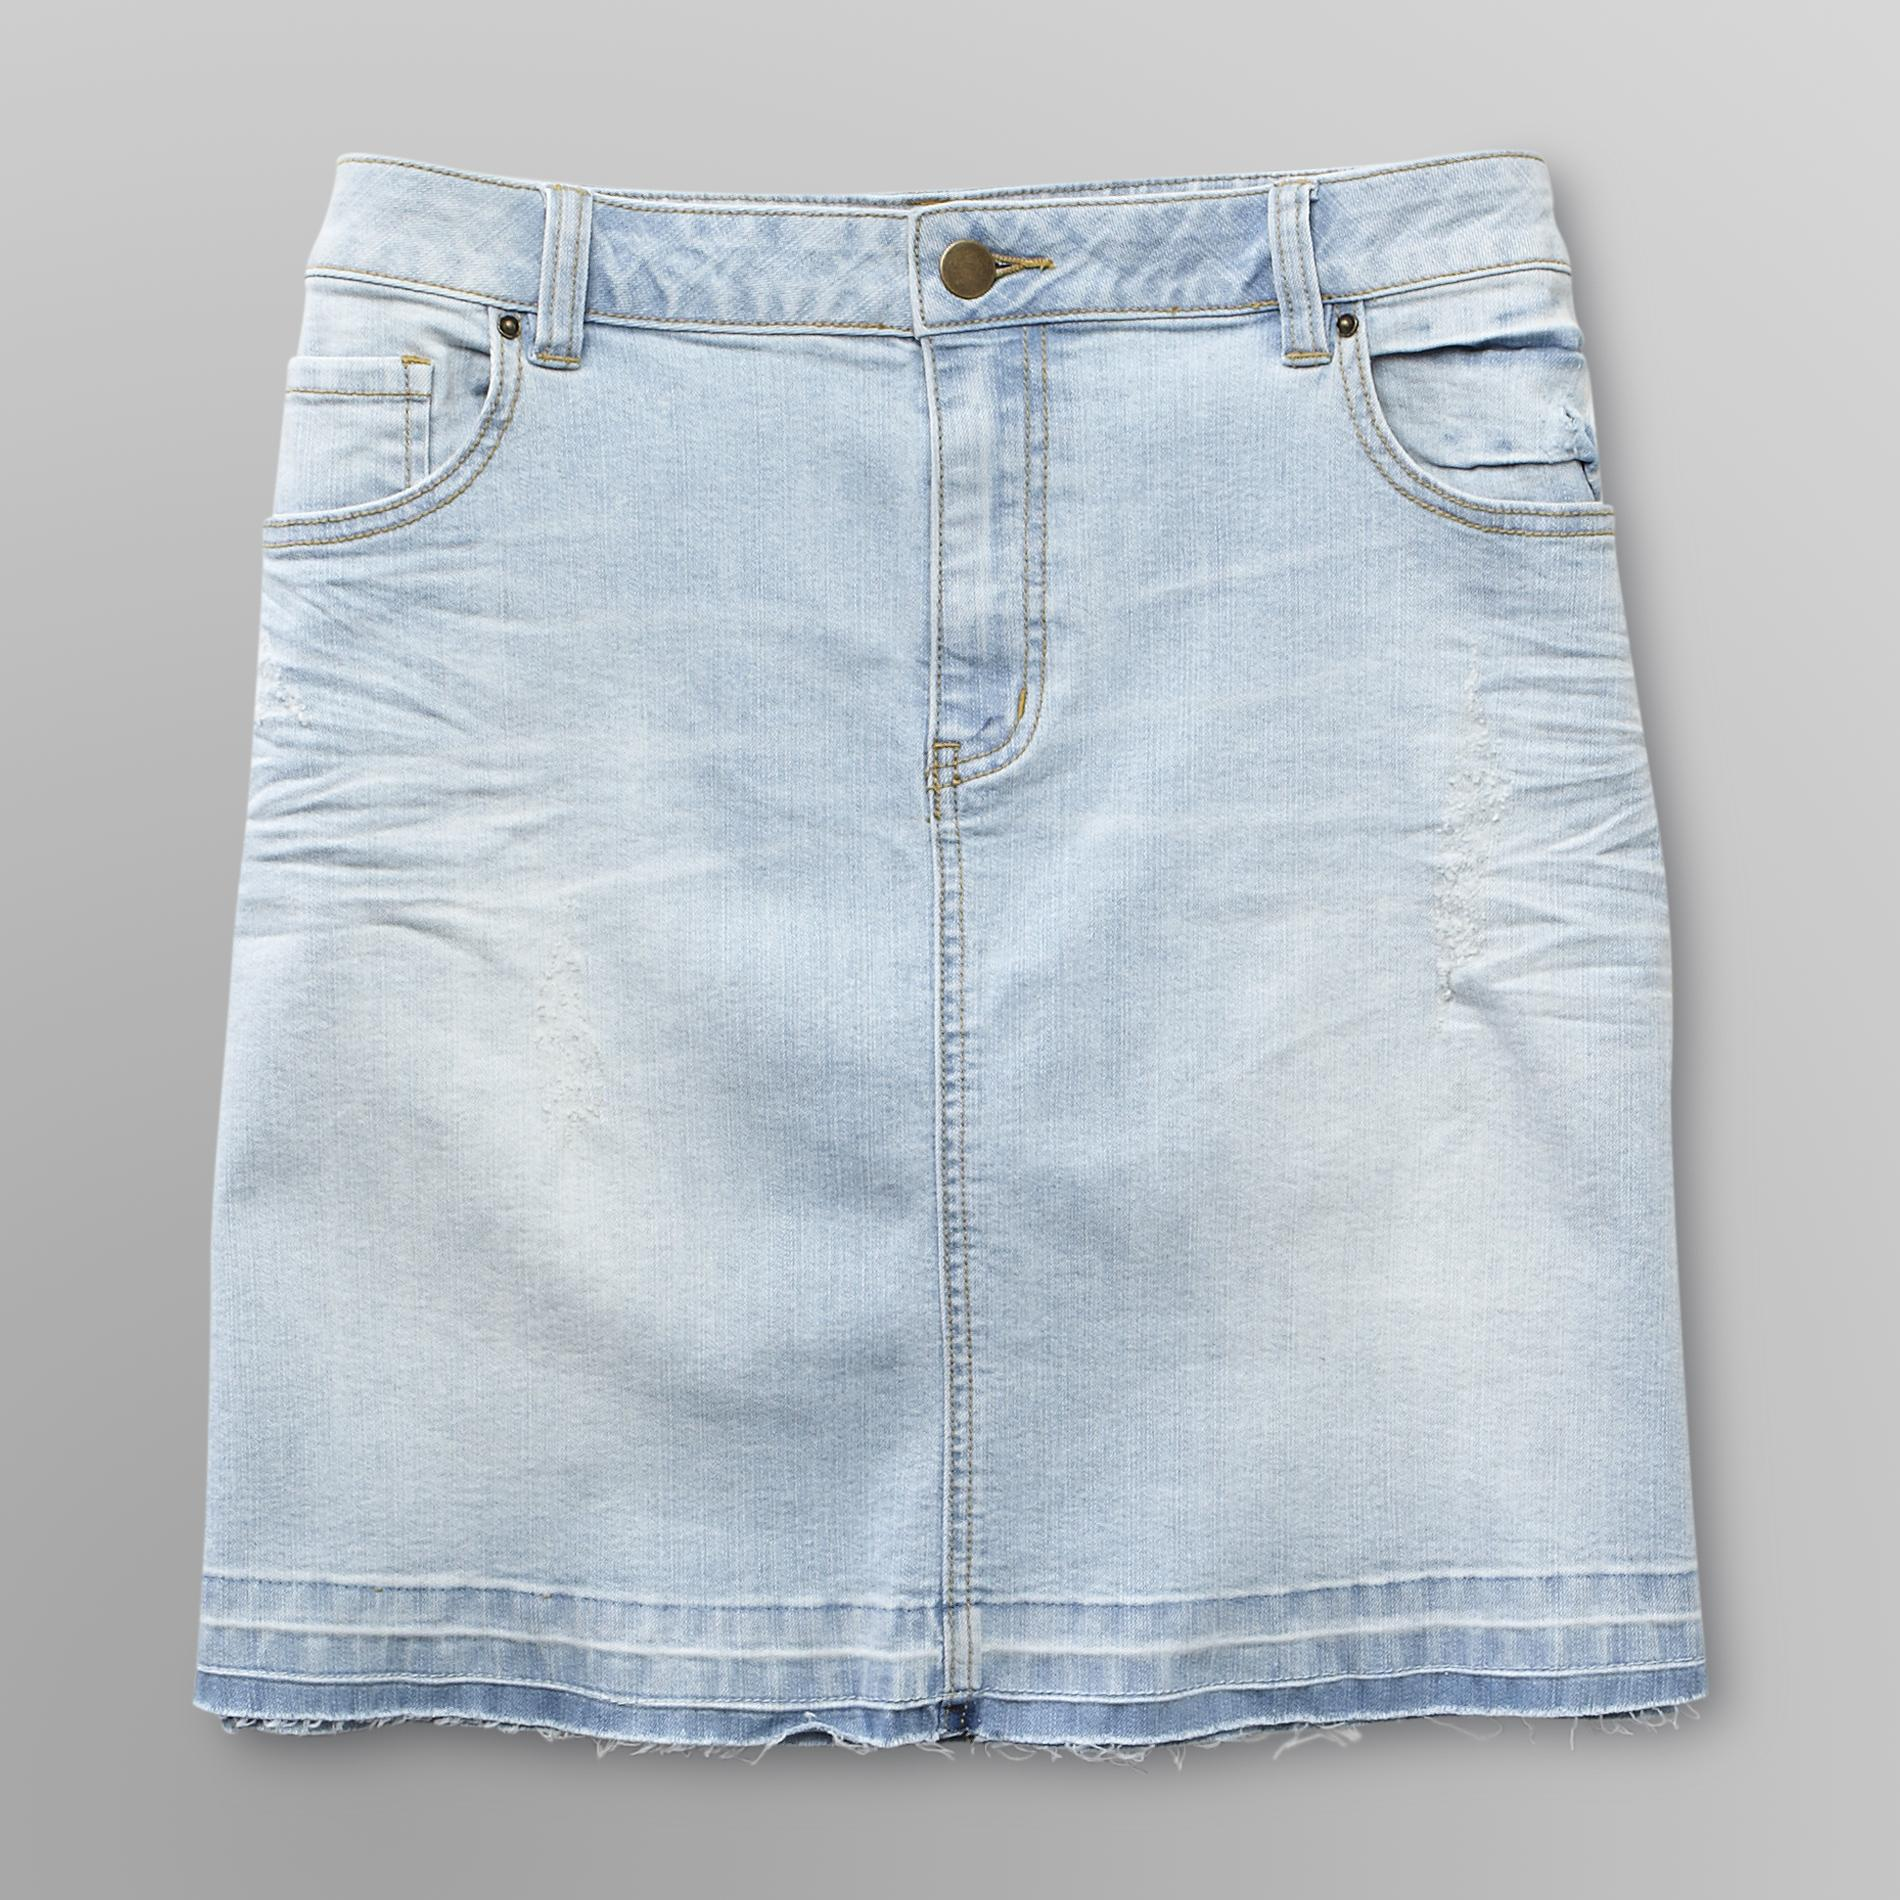 Love Your Style, Love Your Size Women's Plus Denim Skirt at Kmart.com